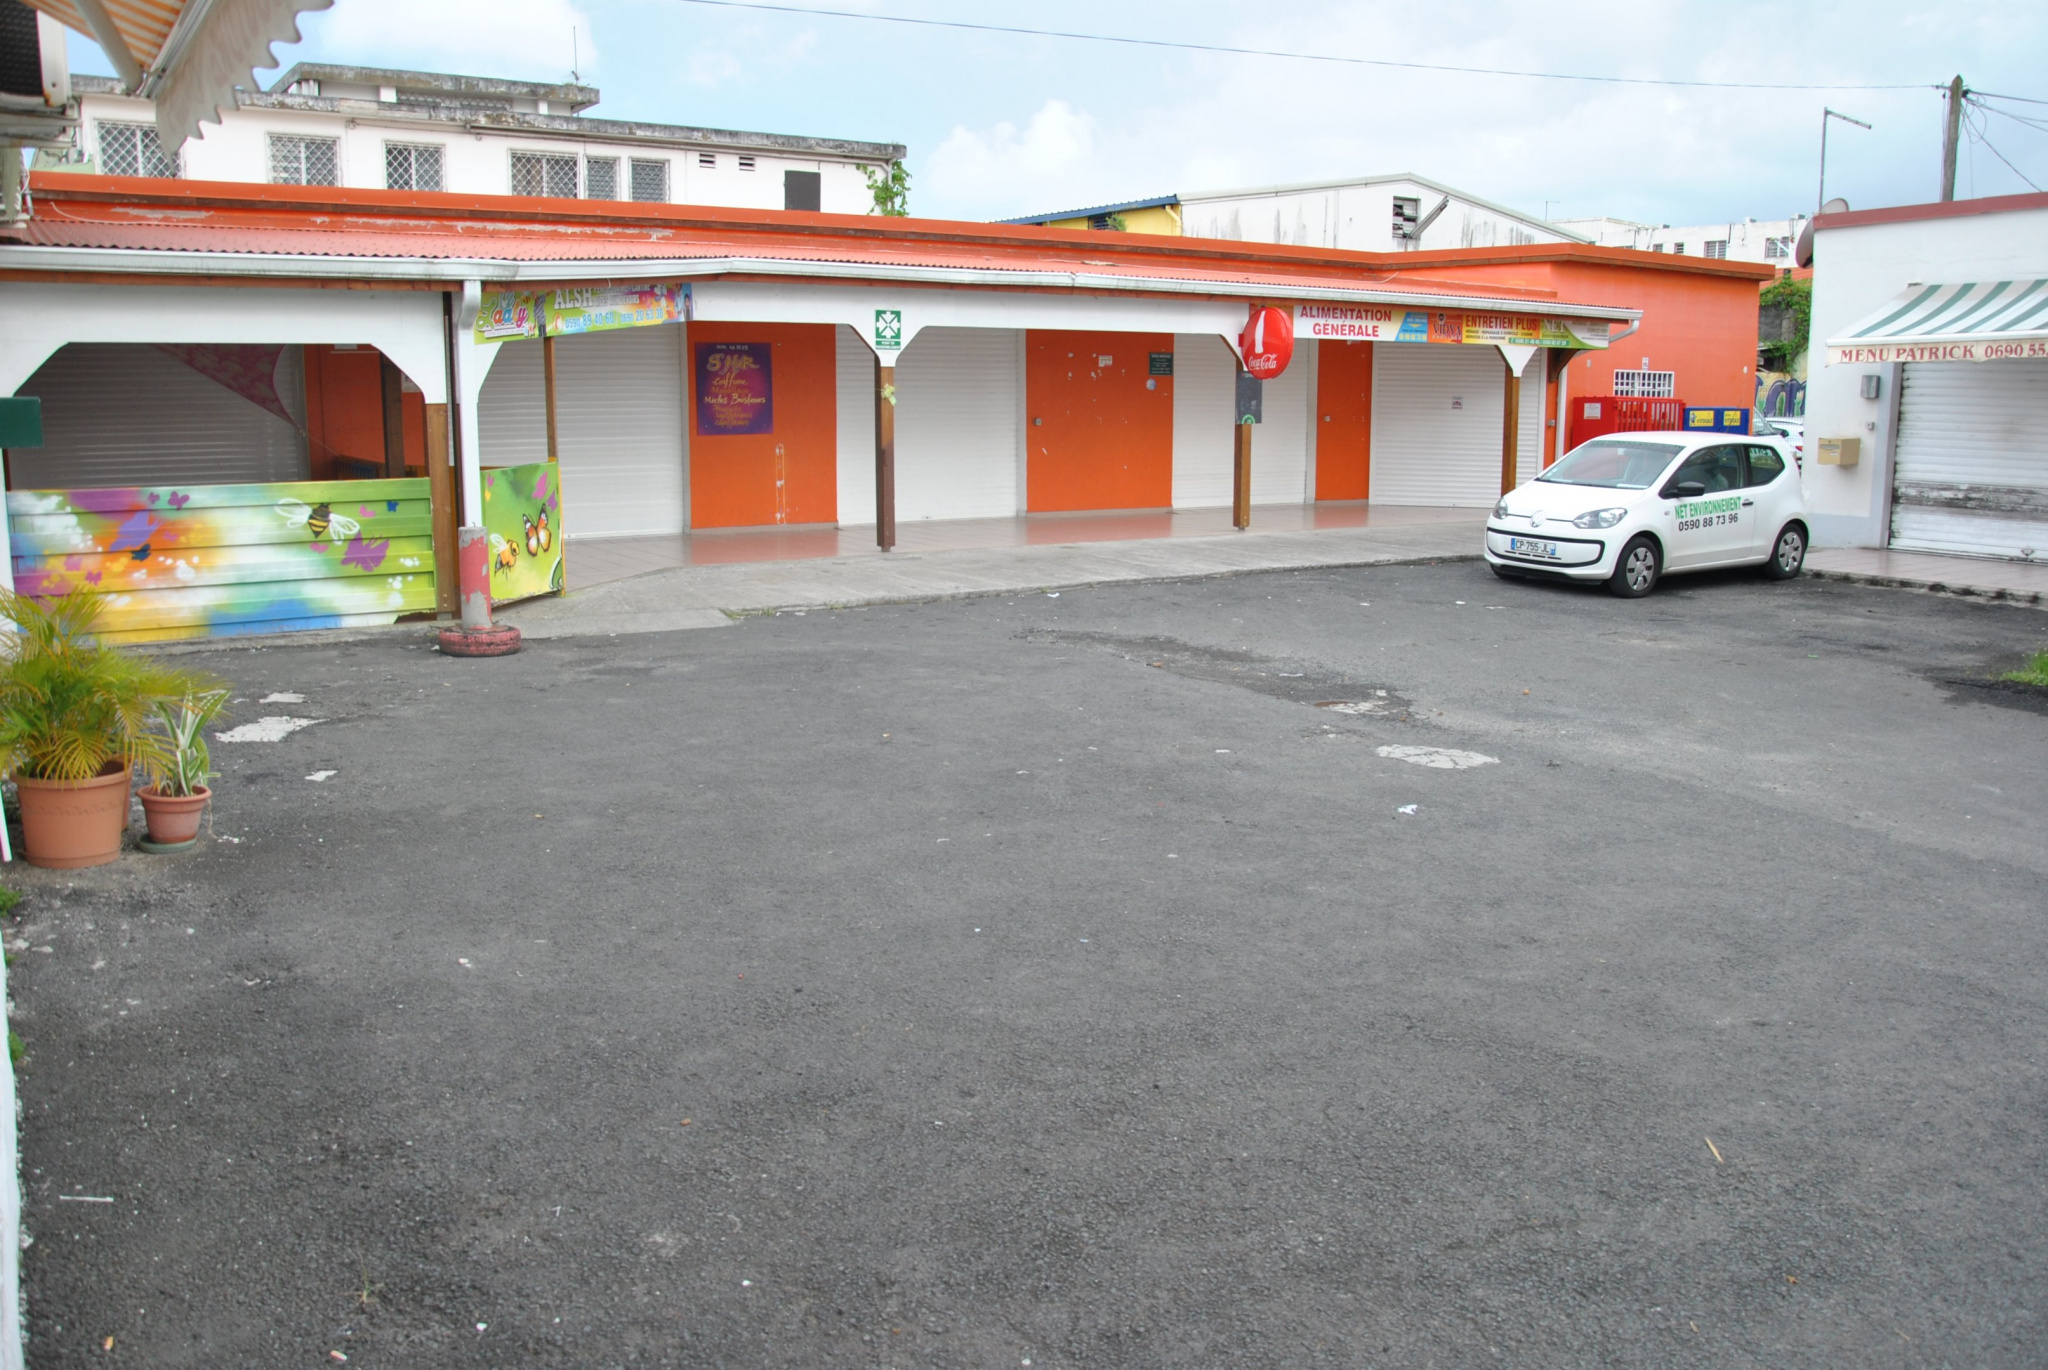 local A vendre POINTE A PITRE